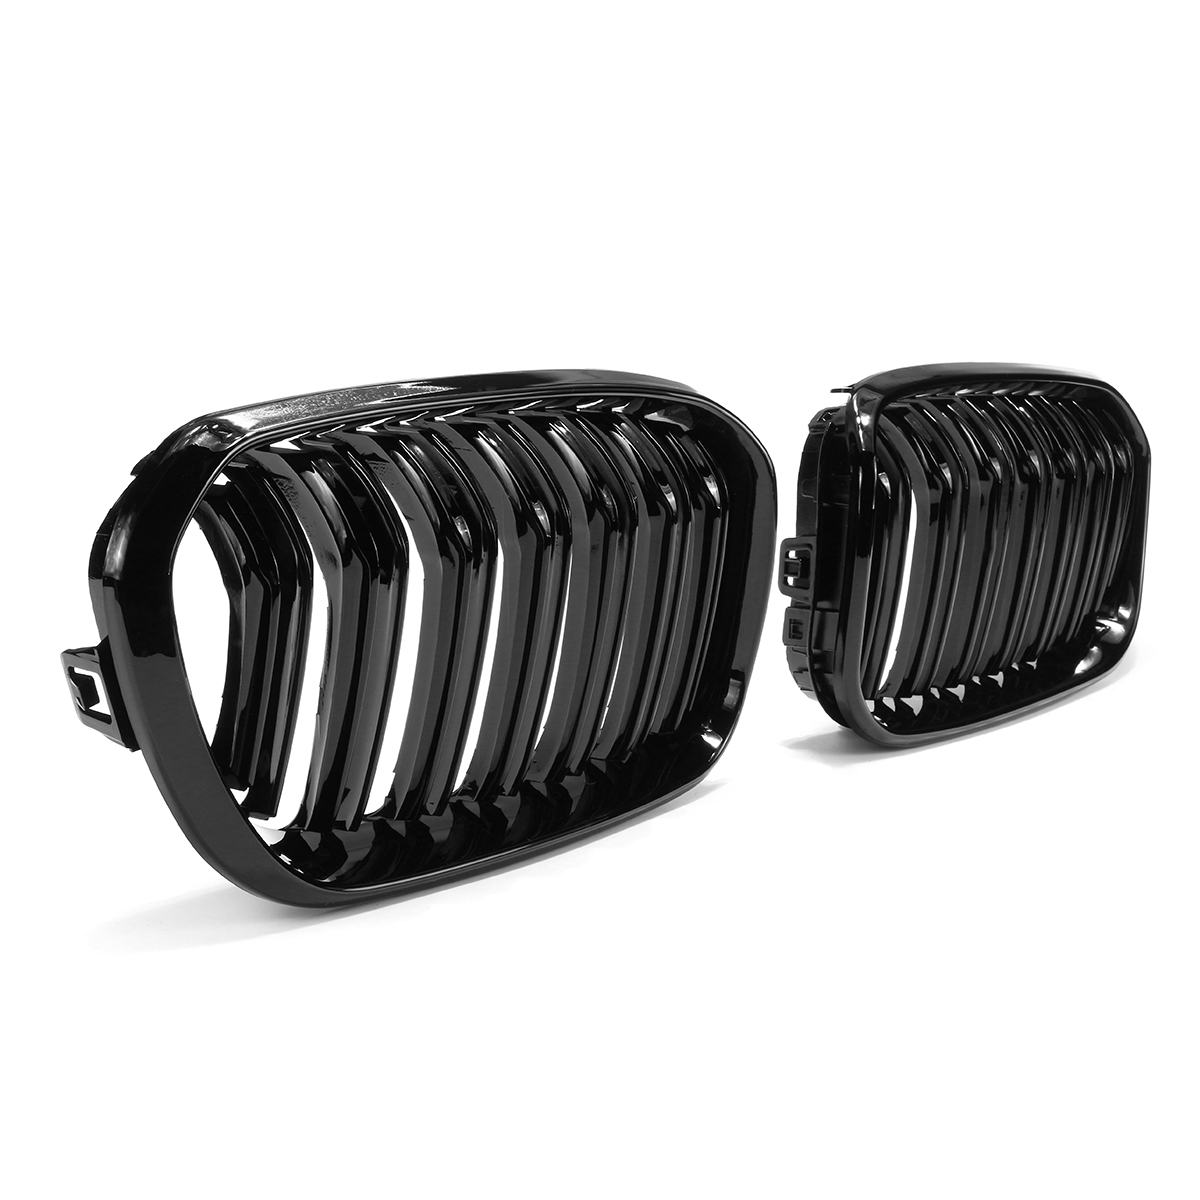 Gloss Black Front Kidney Grill Grille For BMW F20 F21 1 Series 15-17